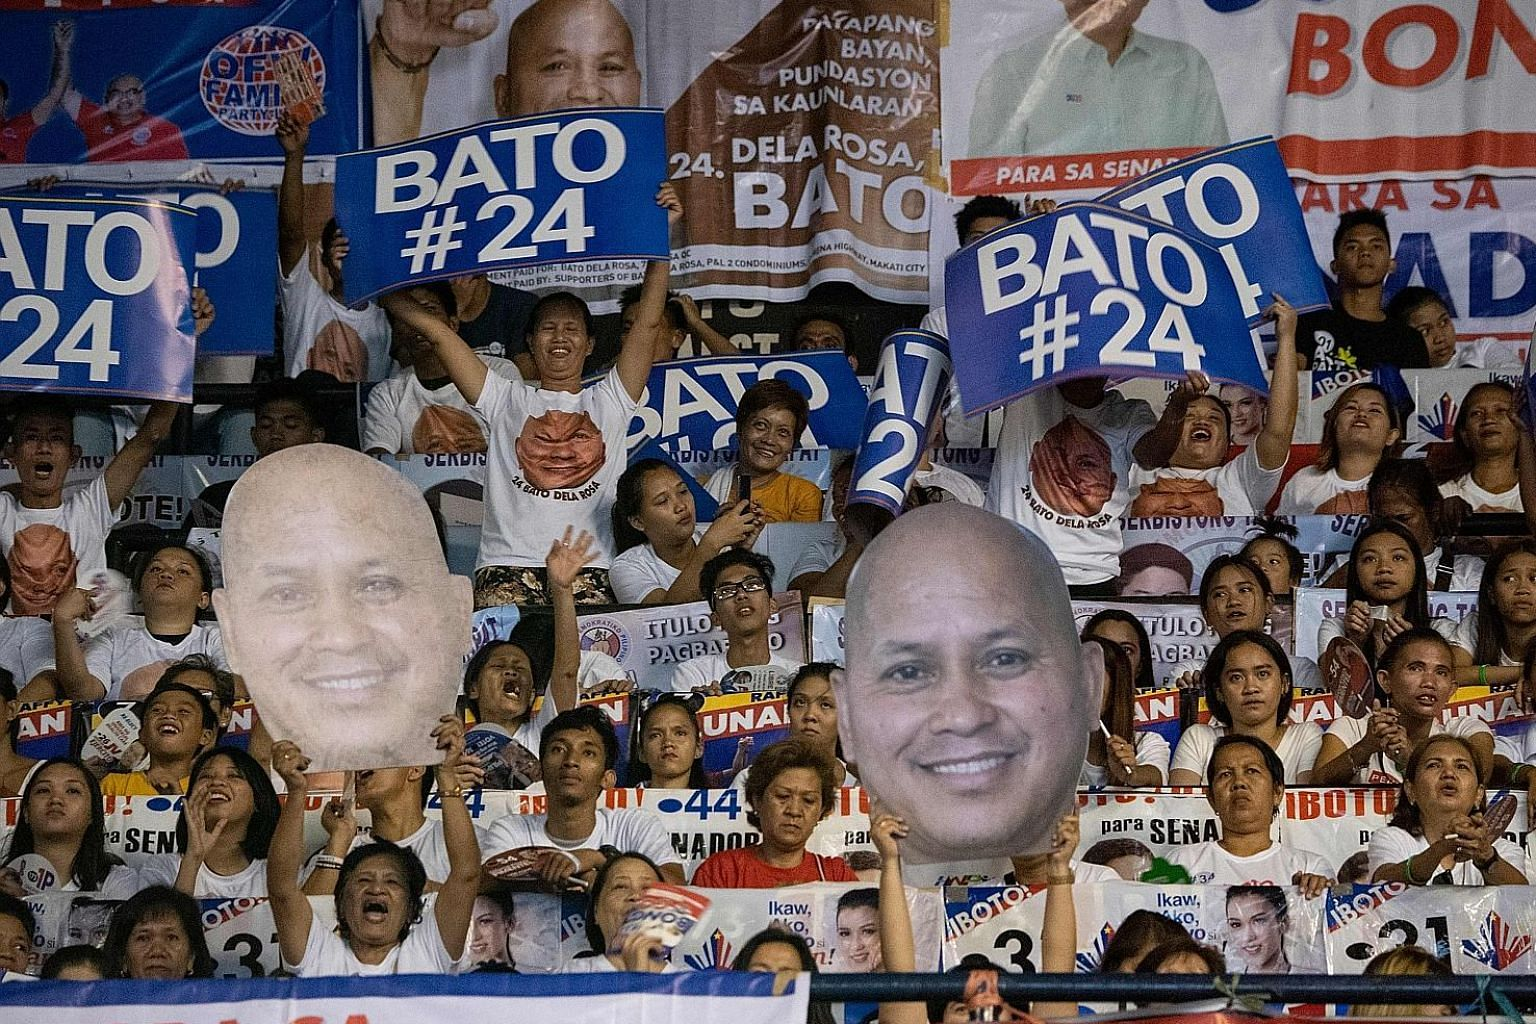 Mr Ronald dela Rosa's supporters at an election campaign in Manila earlier this month. The former police chief, who is seeking a seat in the Philippine Senate, is said to have won 18 million votes in this week's election.